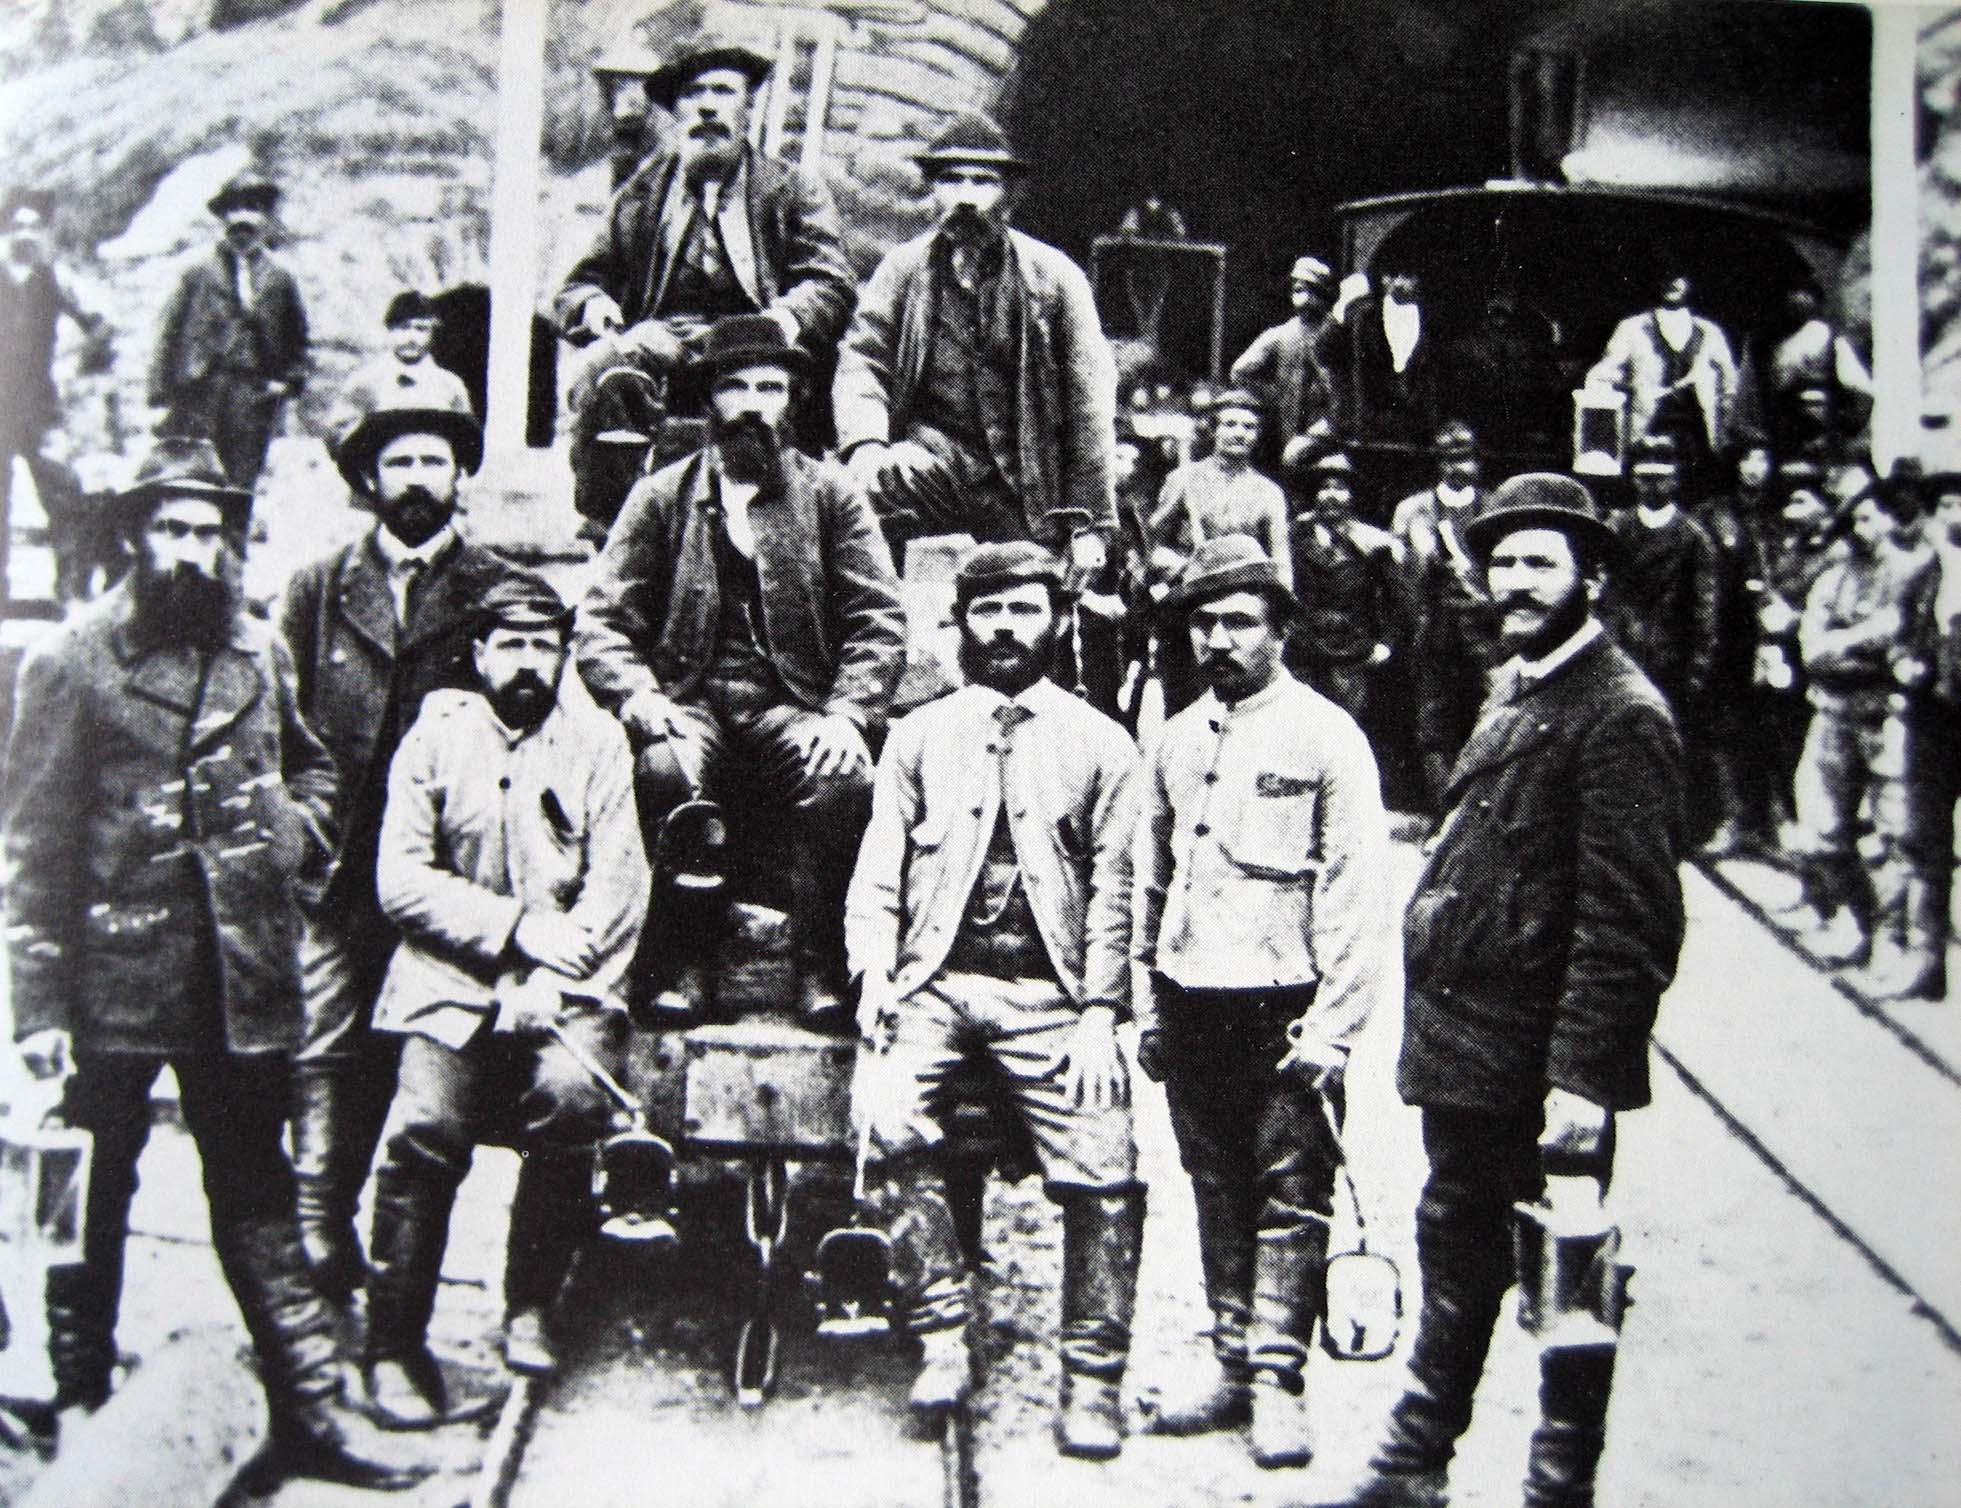 Construction workers around 1880 outside the southern portal of the Gotthard Tunnel in Airolo